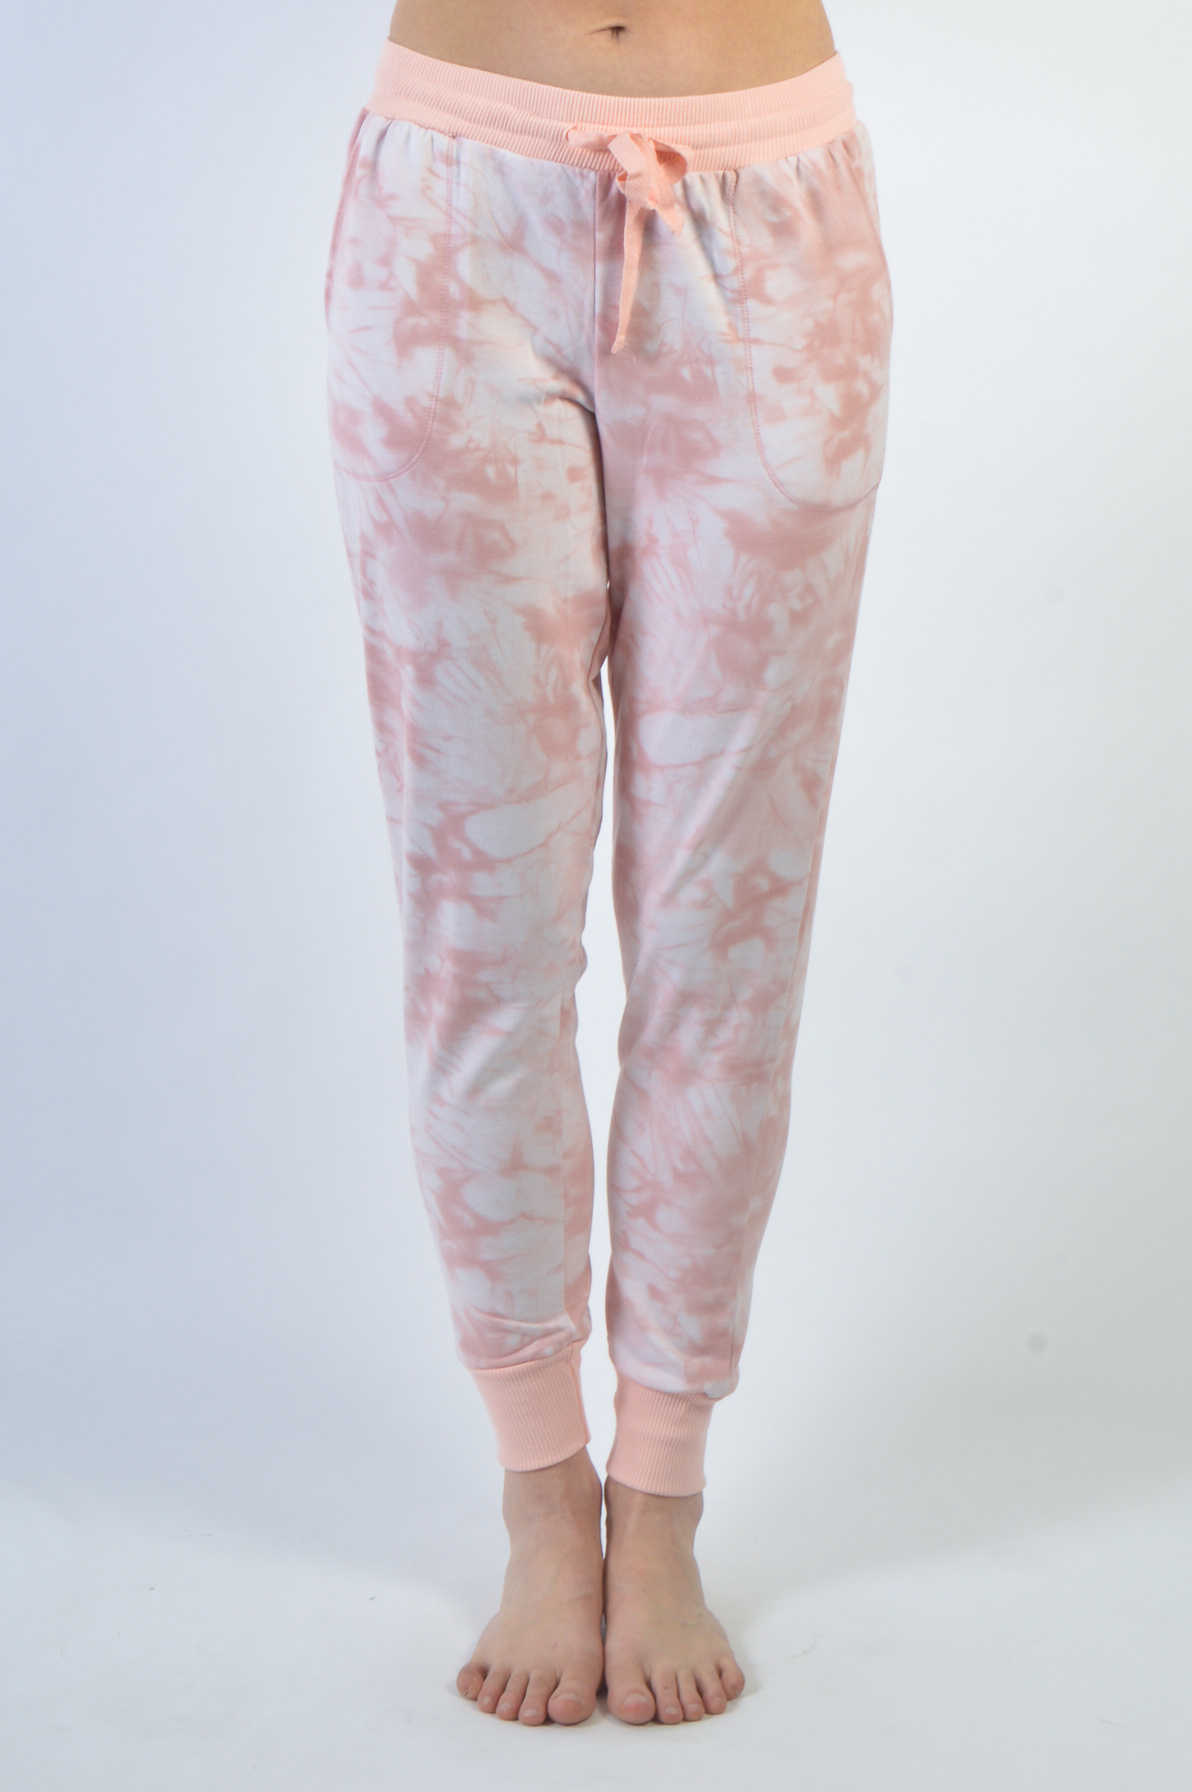 PJ pants Tied Dye